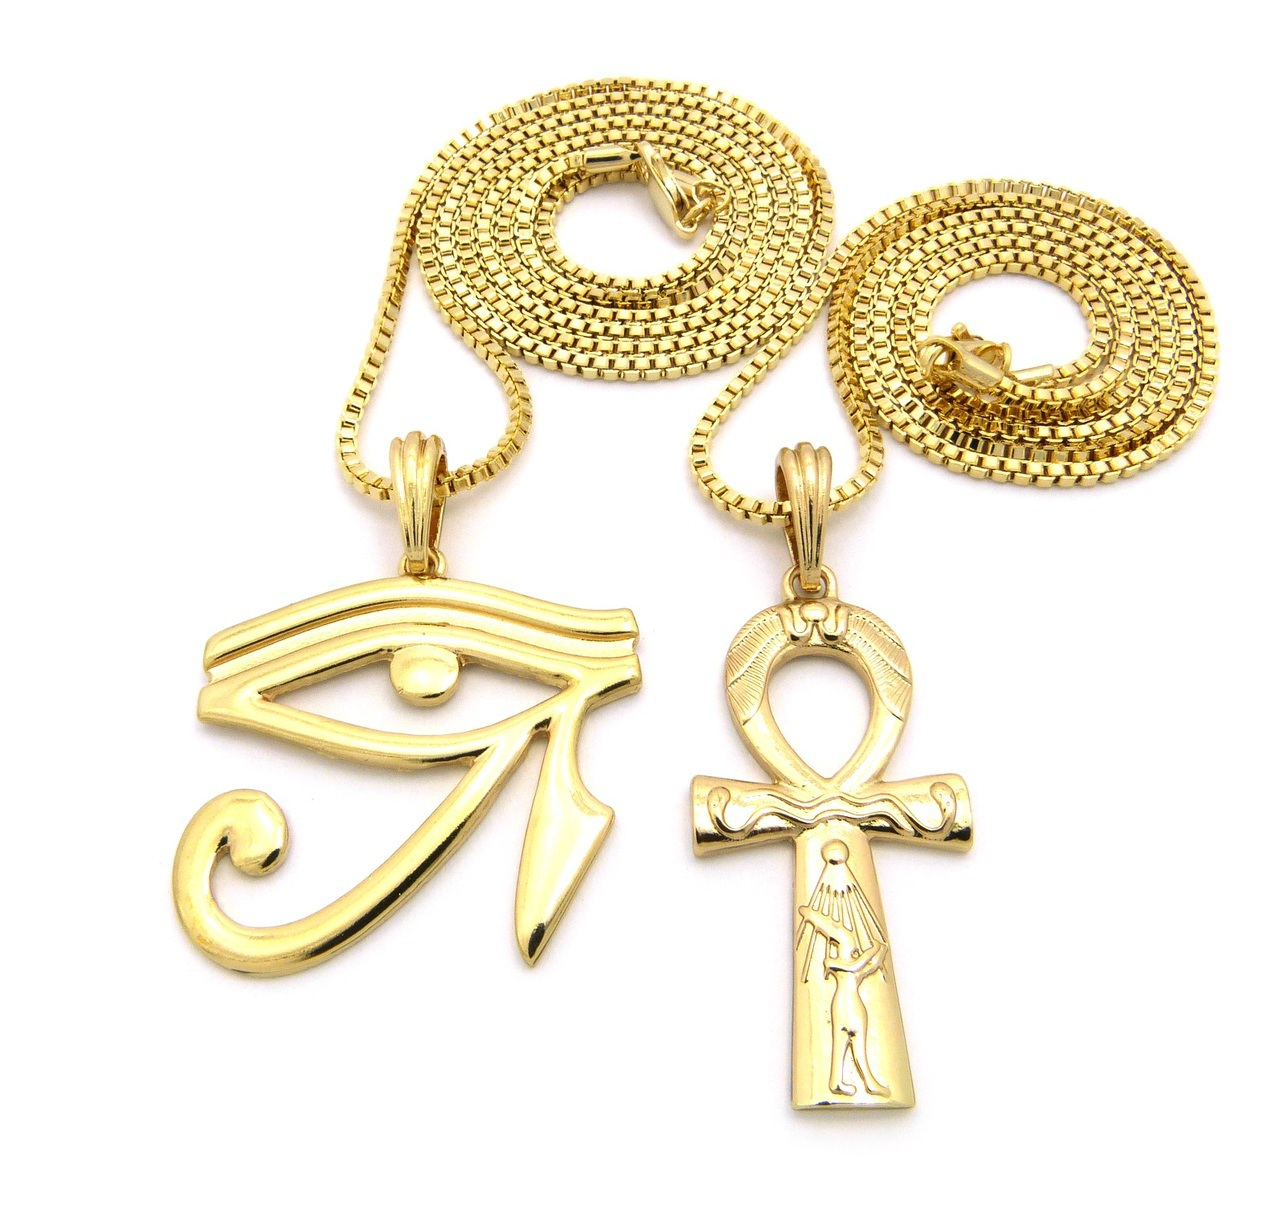 Egyptian ankh drawing at getdrawings free for personal use 1280x1205 eye of ra ankh cross small micro pendant chain necklace gold aloadofball Image collections